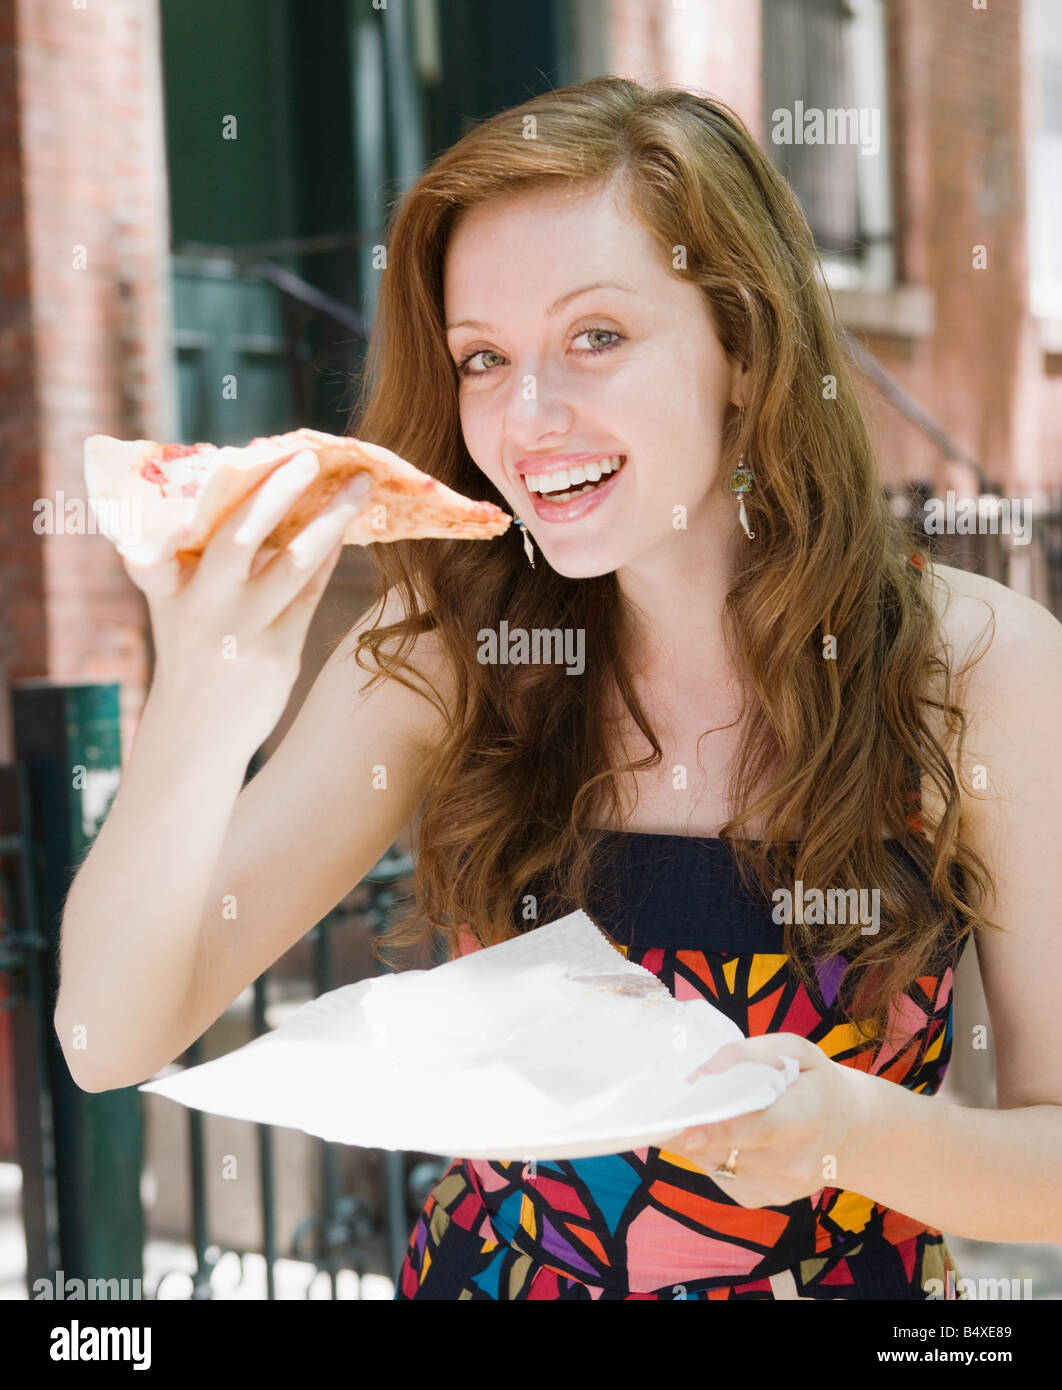 New York Pizza Eating Stock Photos & New York Pizza Eating Stock ...